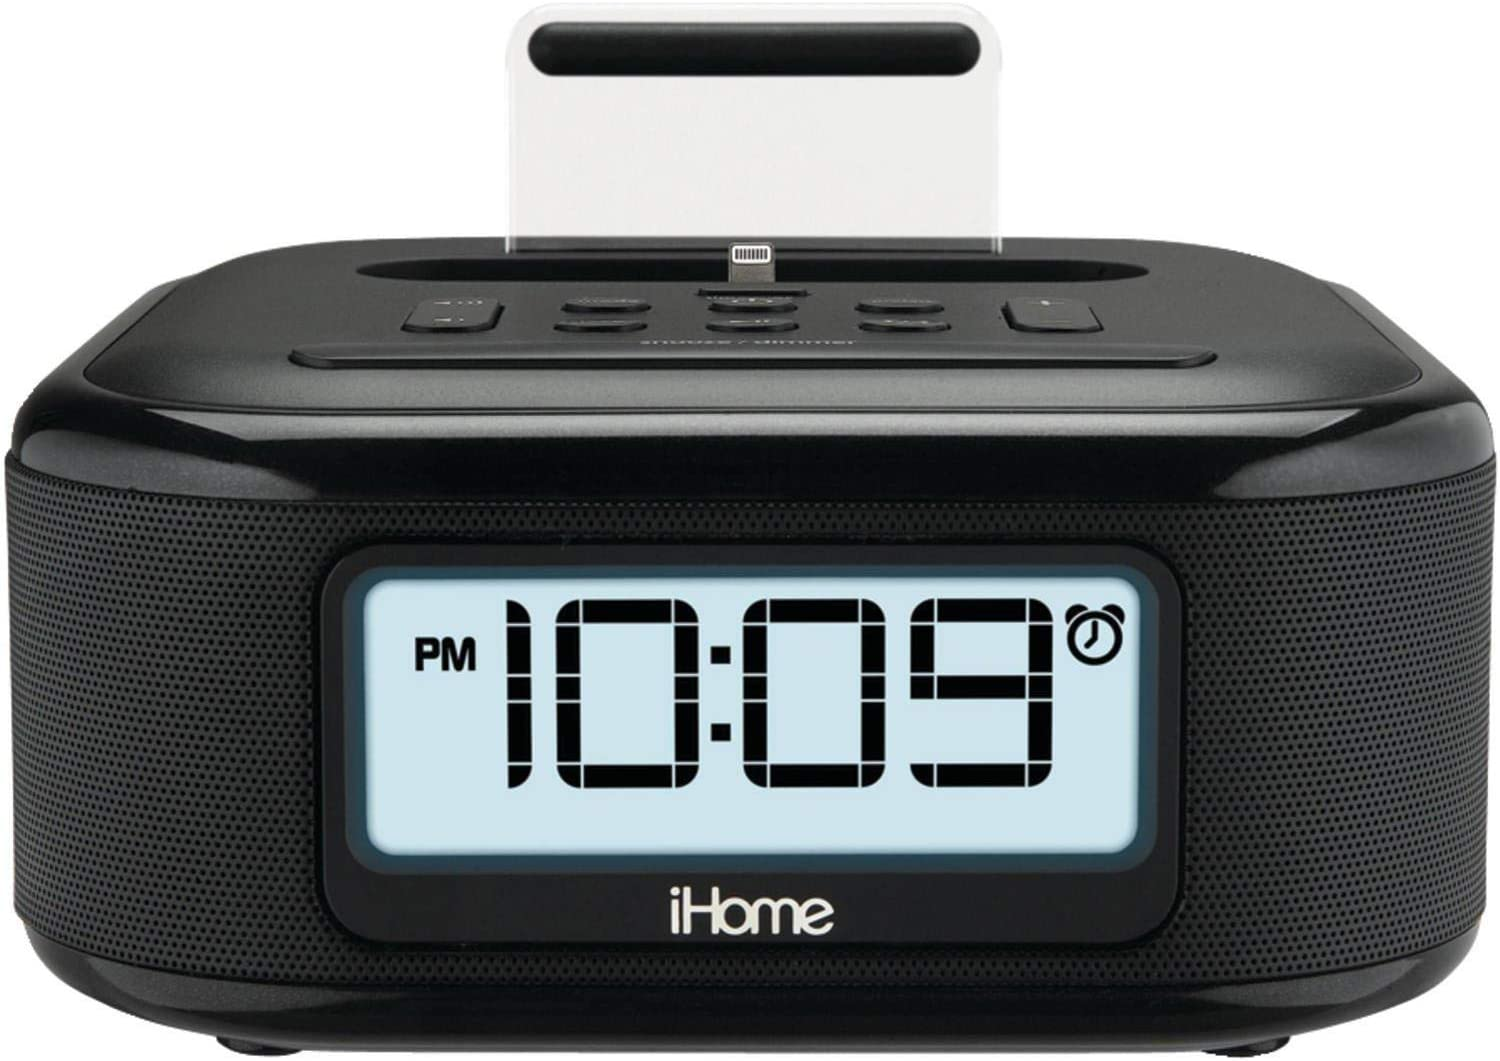 Amazon Com Ihome Ipl23 Alarm Clock Fm Radio With Lightning Iphone Charging Dock Station For Iphone Xs Xs Max Xr X Iphone 8 7 6 Plus Usb Port To Charge Any Usb Device Electronics,Floridays Resort Orlando 2 Bedroom Suite